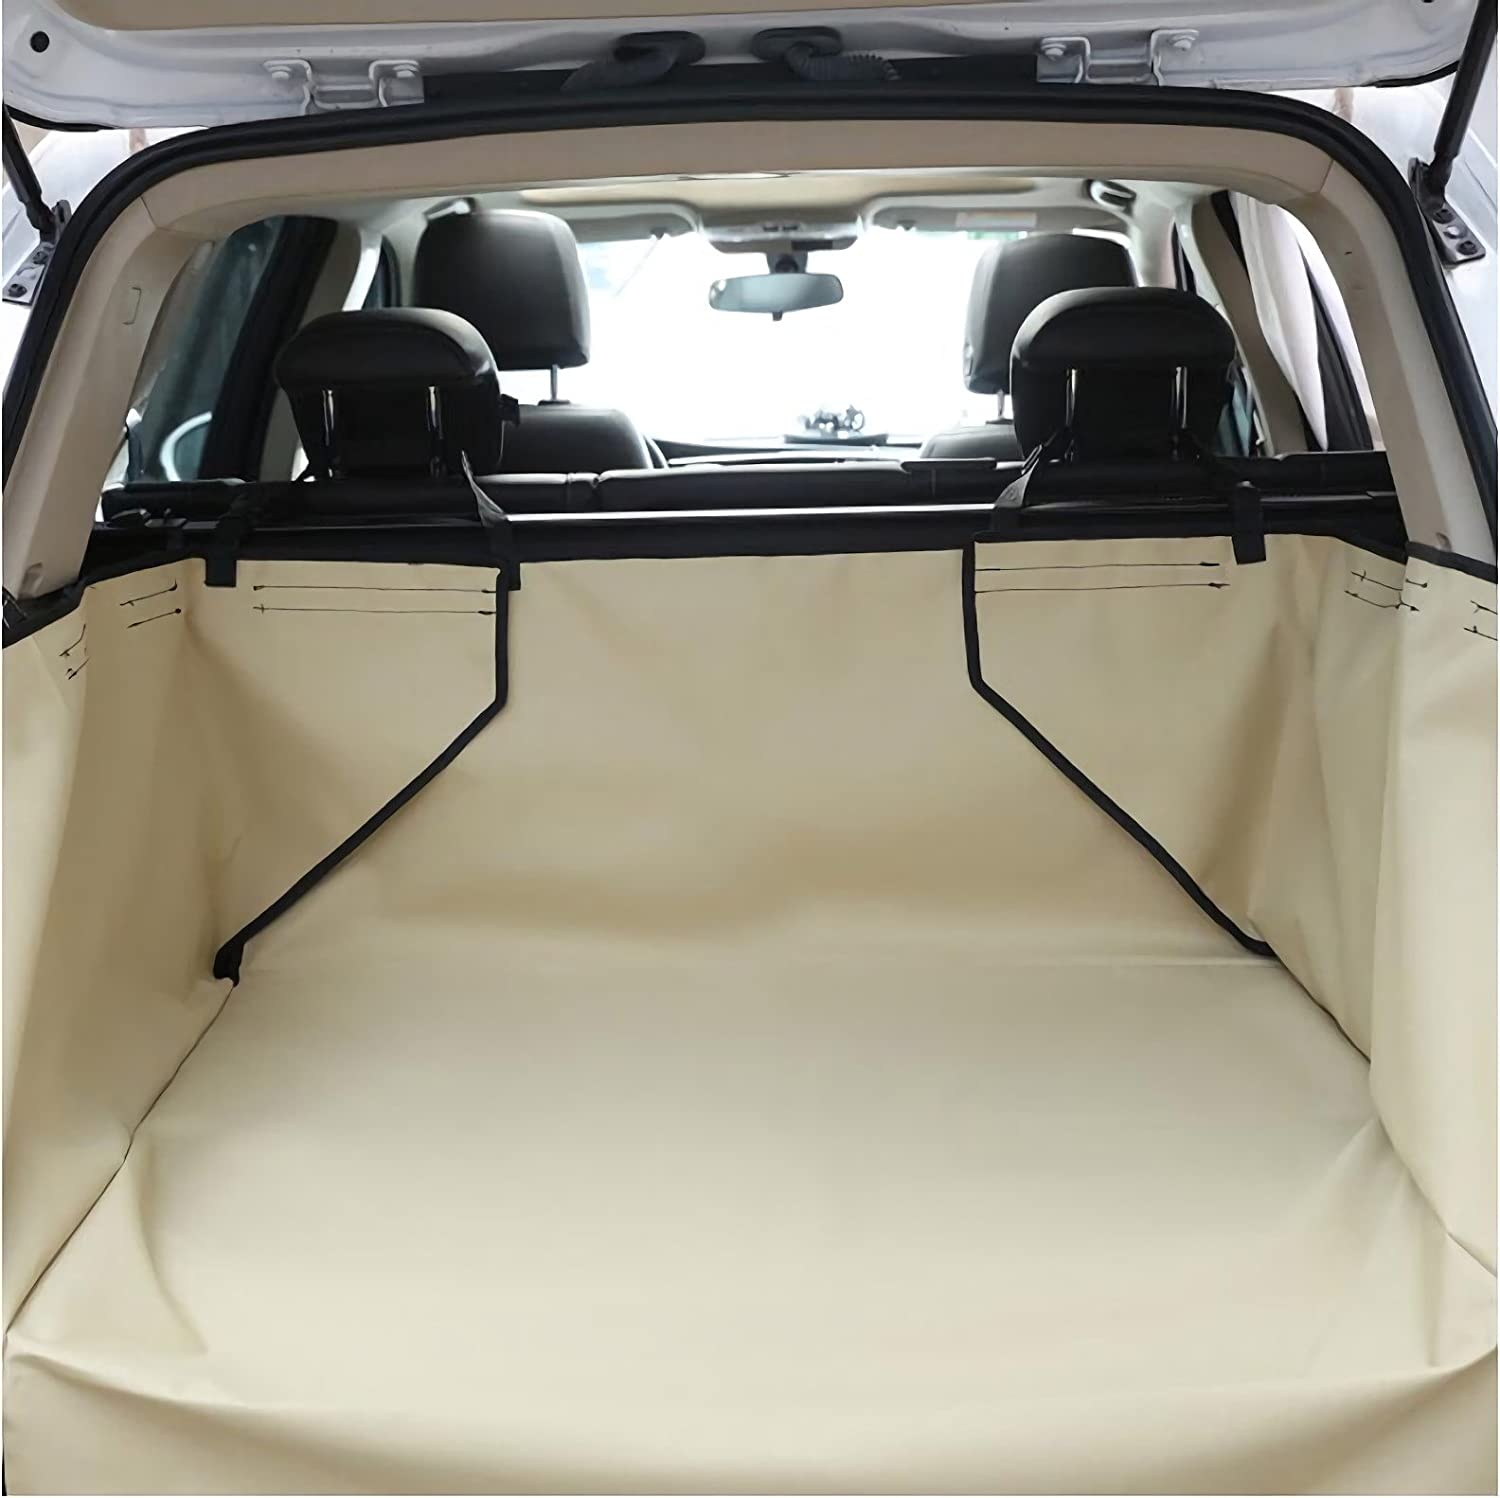 Beige 130 65533;100 _43cmOxfordPet Dog Trunk Car Liner Car SUV Van Seat Cover Water Floor Mat for Dogs Cats Wasable Dog Accessories 130 2155100;215cm